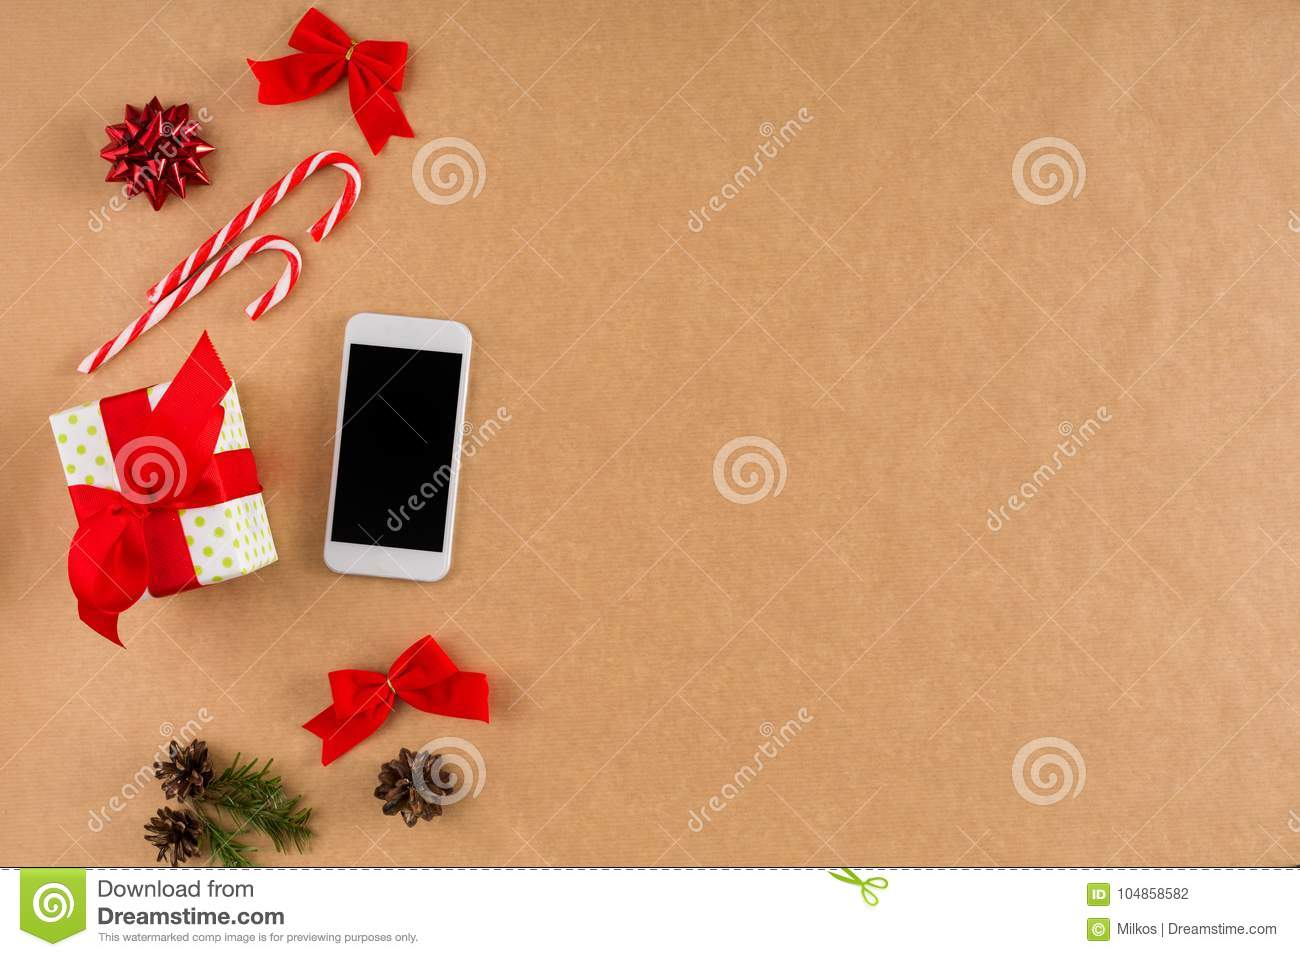 download phone and christmas decorations on craft paper background top view flat lay